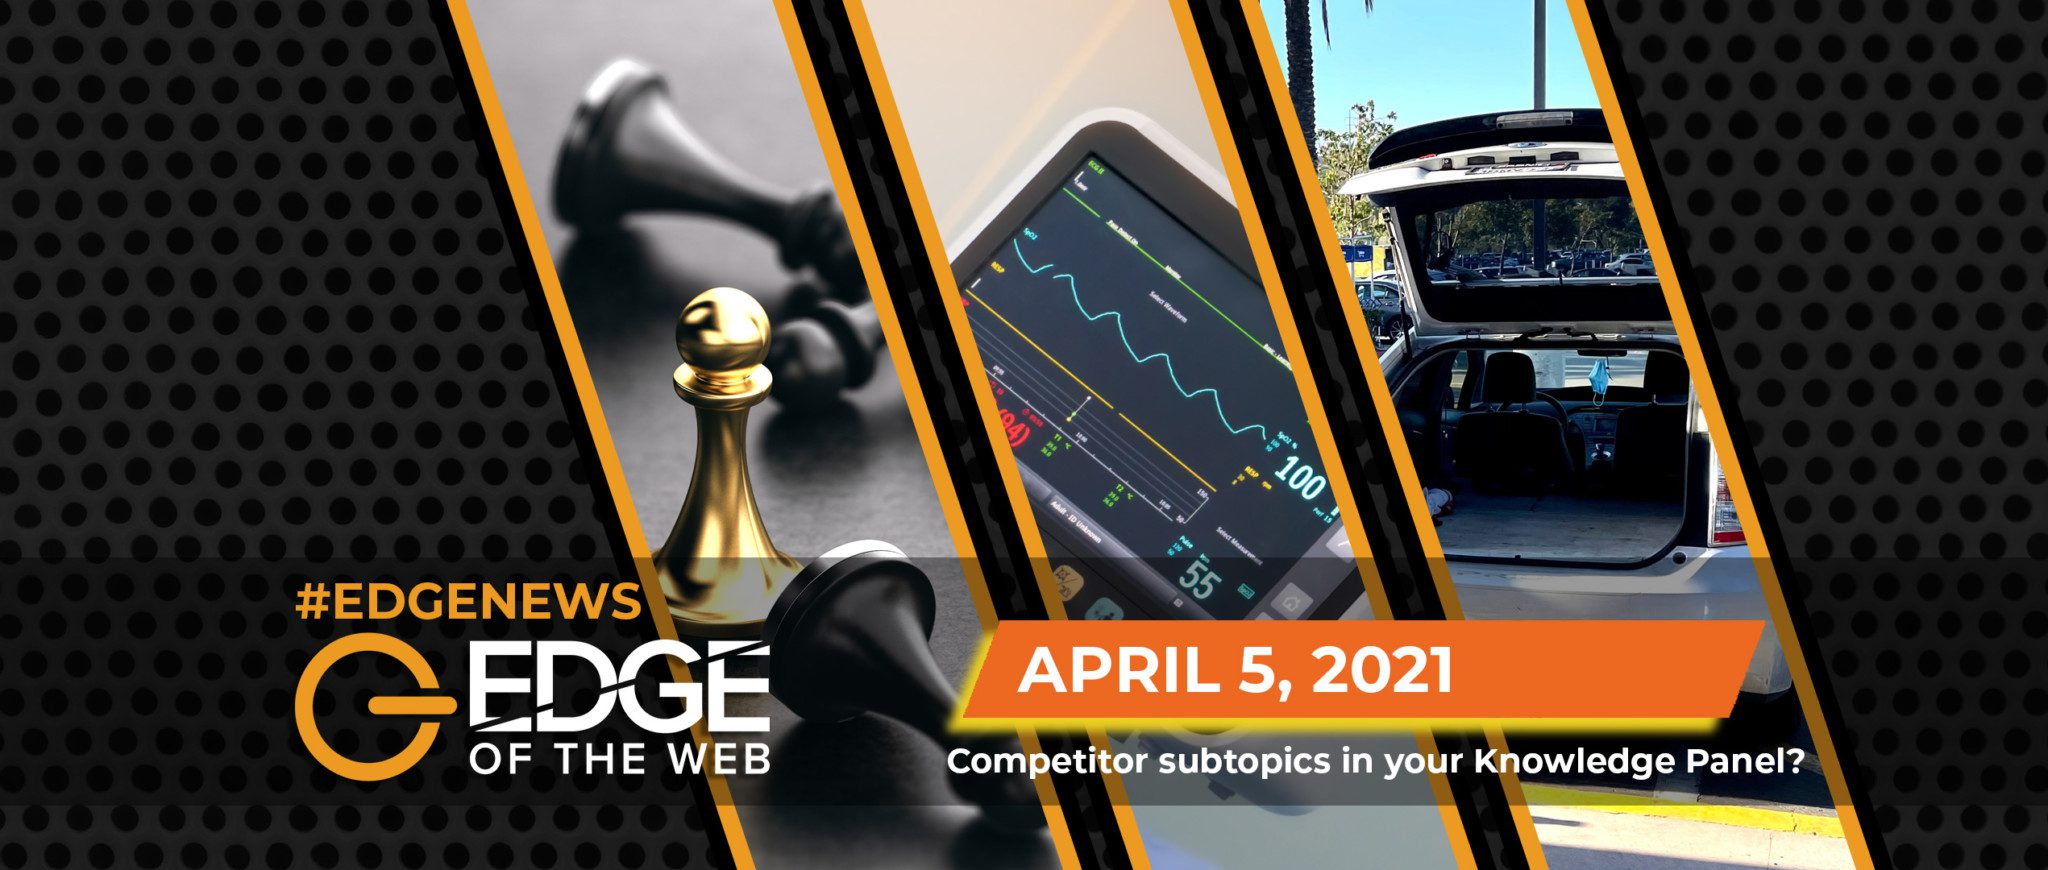 EDGE News Featured Image April 5th